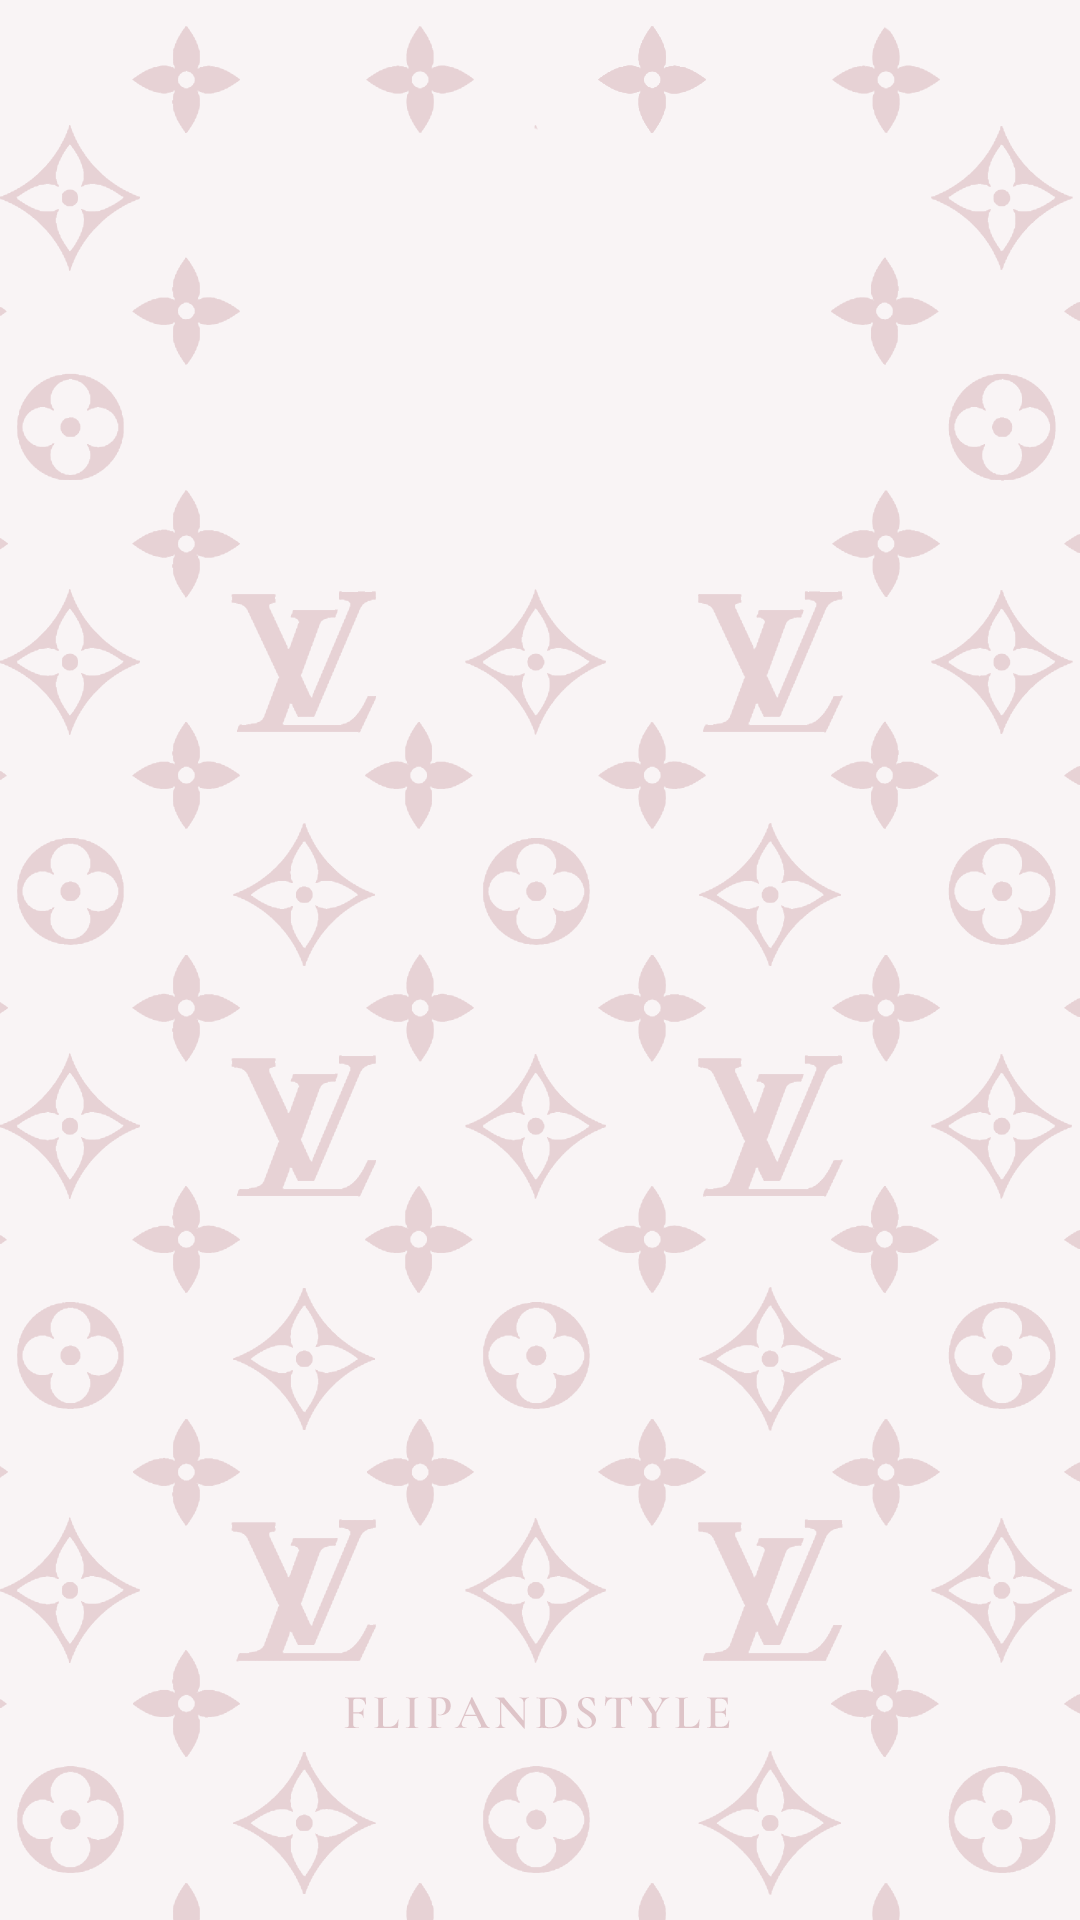 Free Wallpaper - Louis Vuitton iphone background #phonebackgrounds